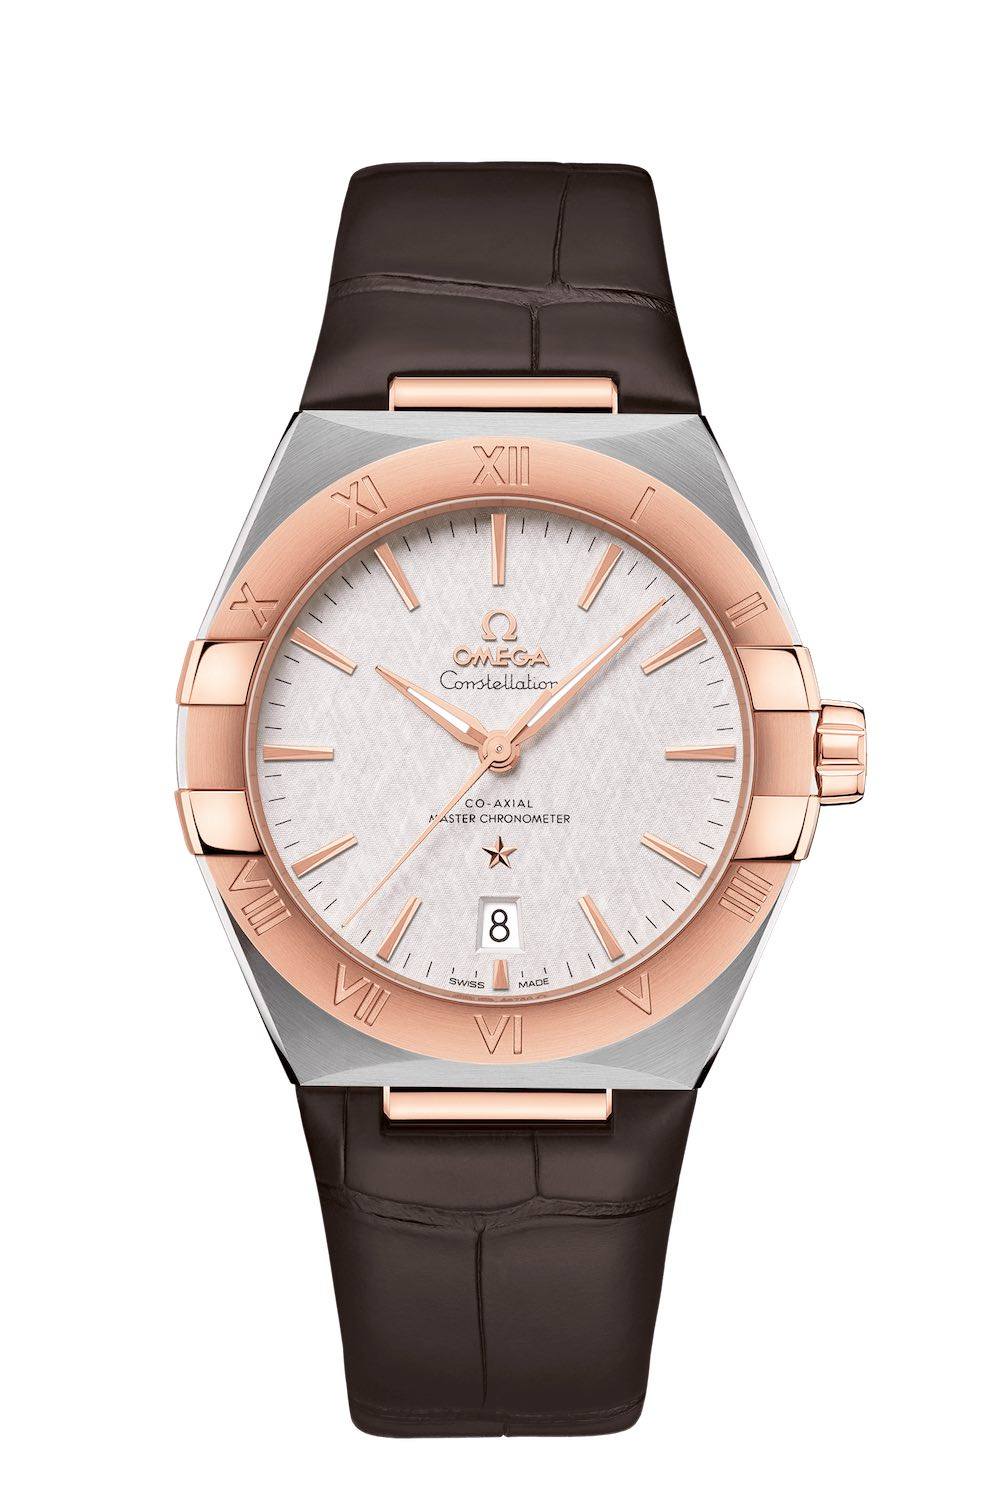 omega-constellation-13123392002001-1-product-zoom